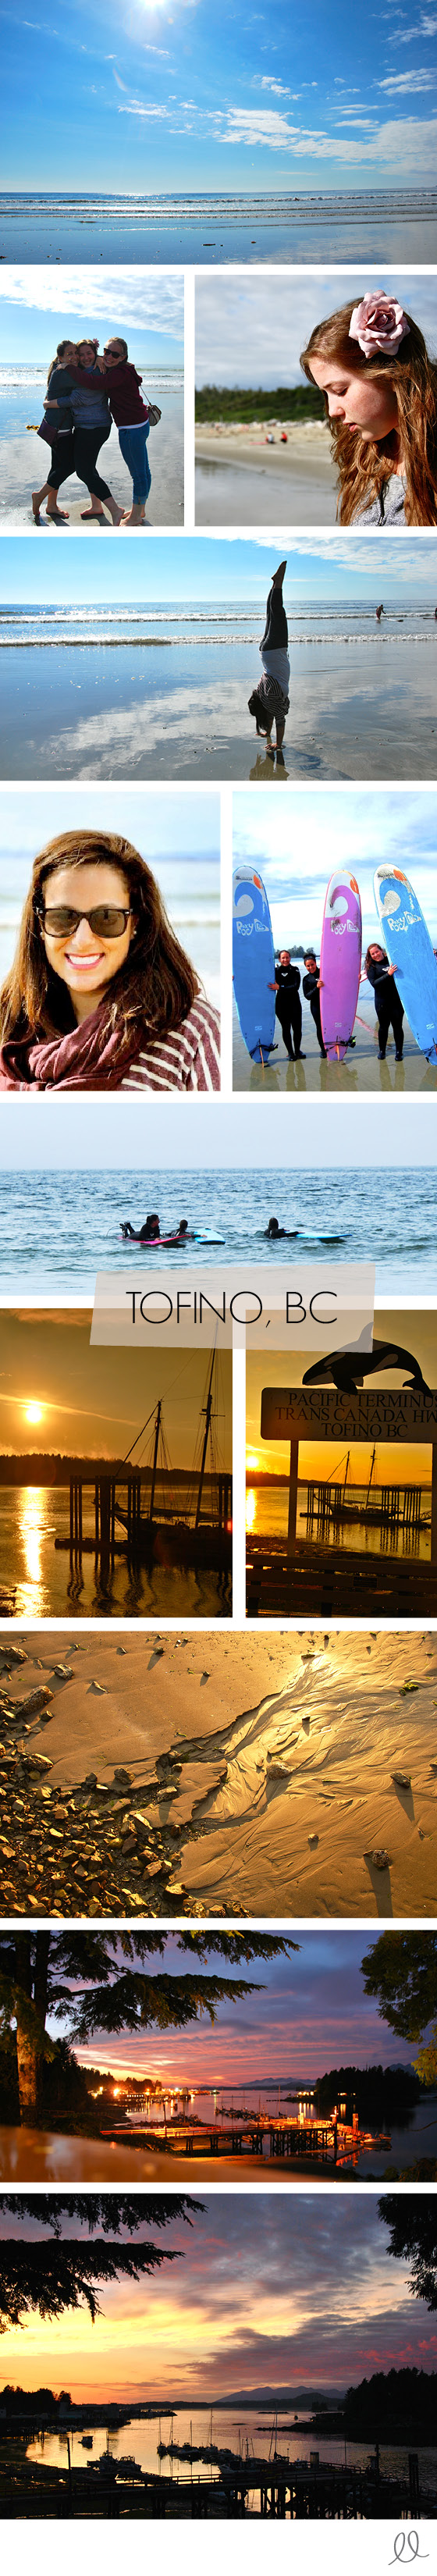 Pictures of Tofino